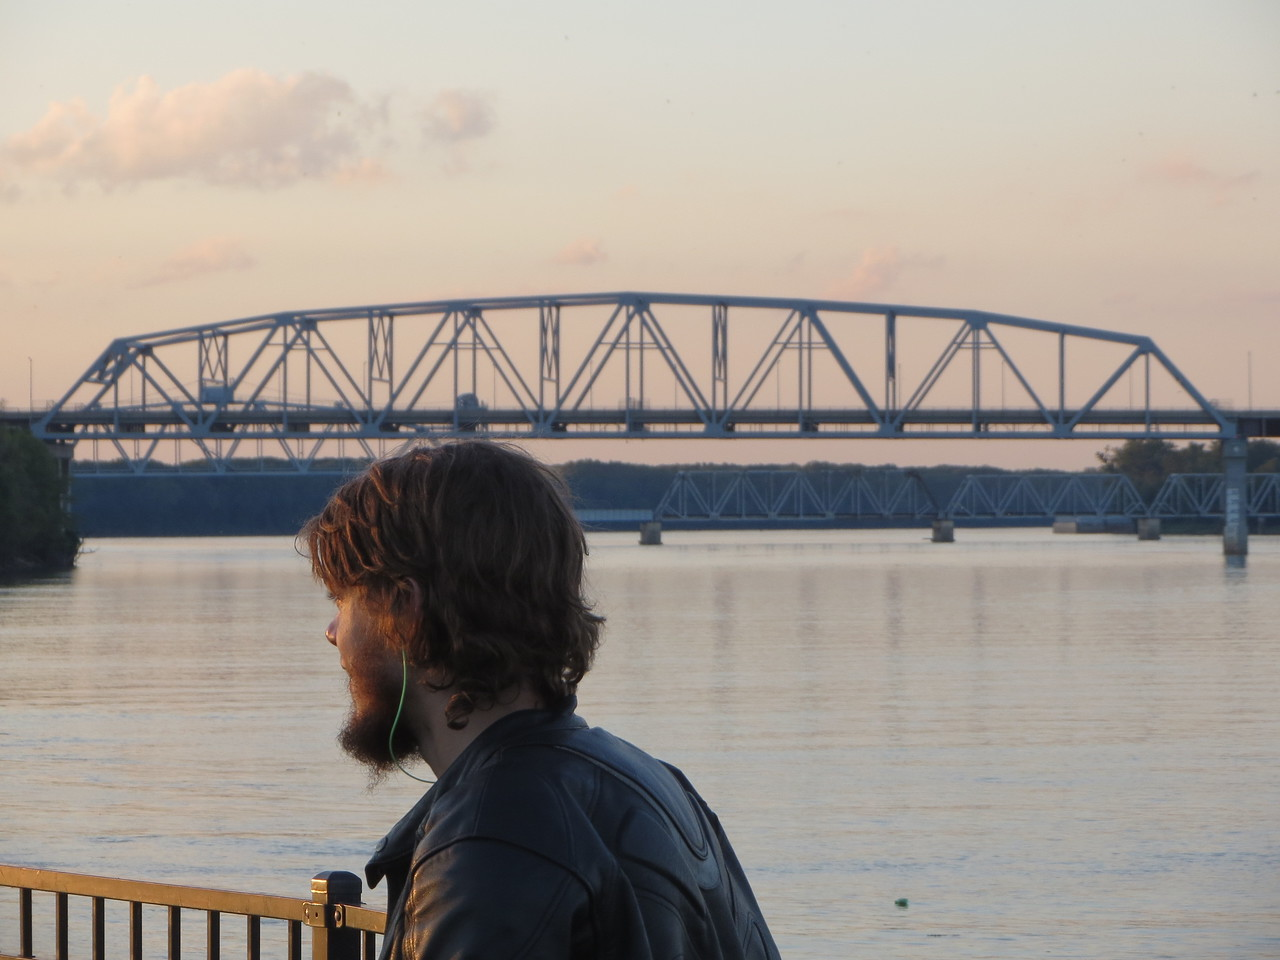 Day 1 (681 miles): Hannibal MO; Matt checks out the Mark Twain Memorial Park, in the background is the Mark Twain Bridge which spans the Mark Twain River.